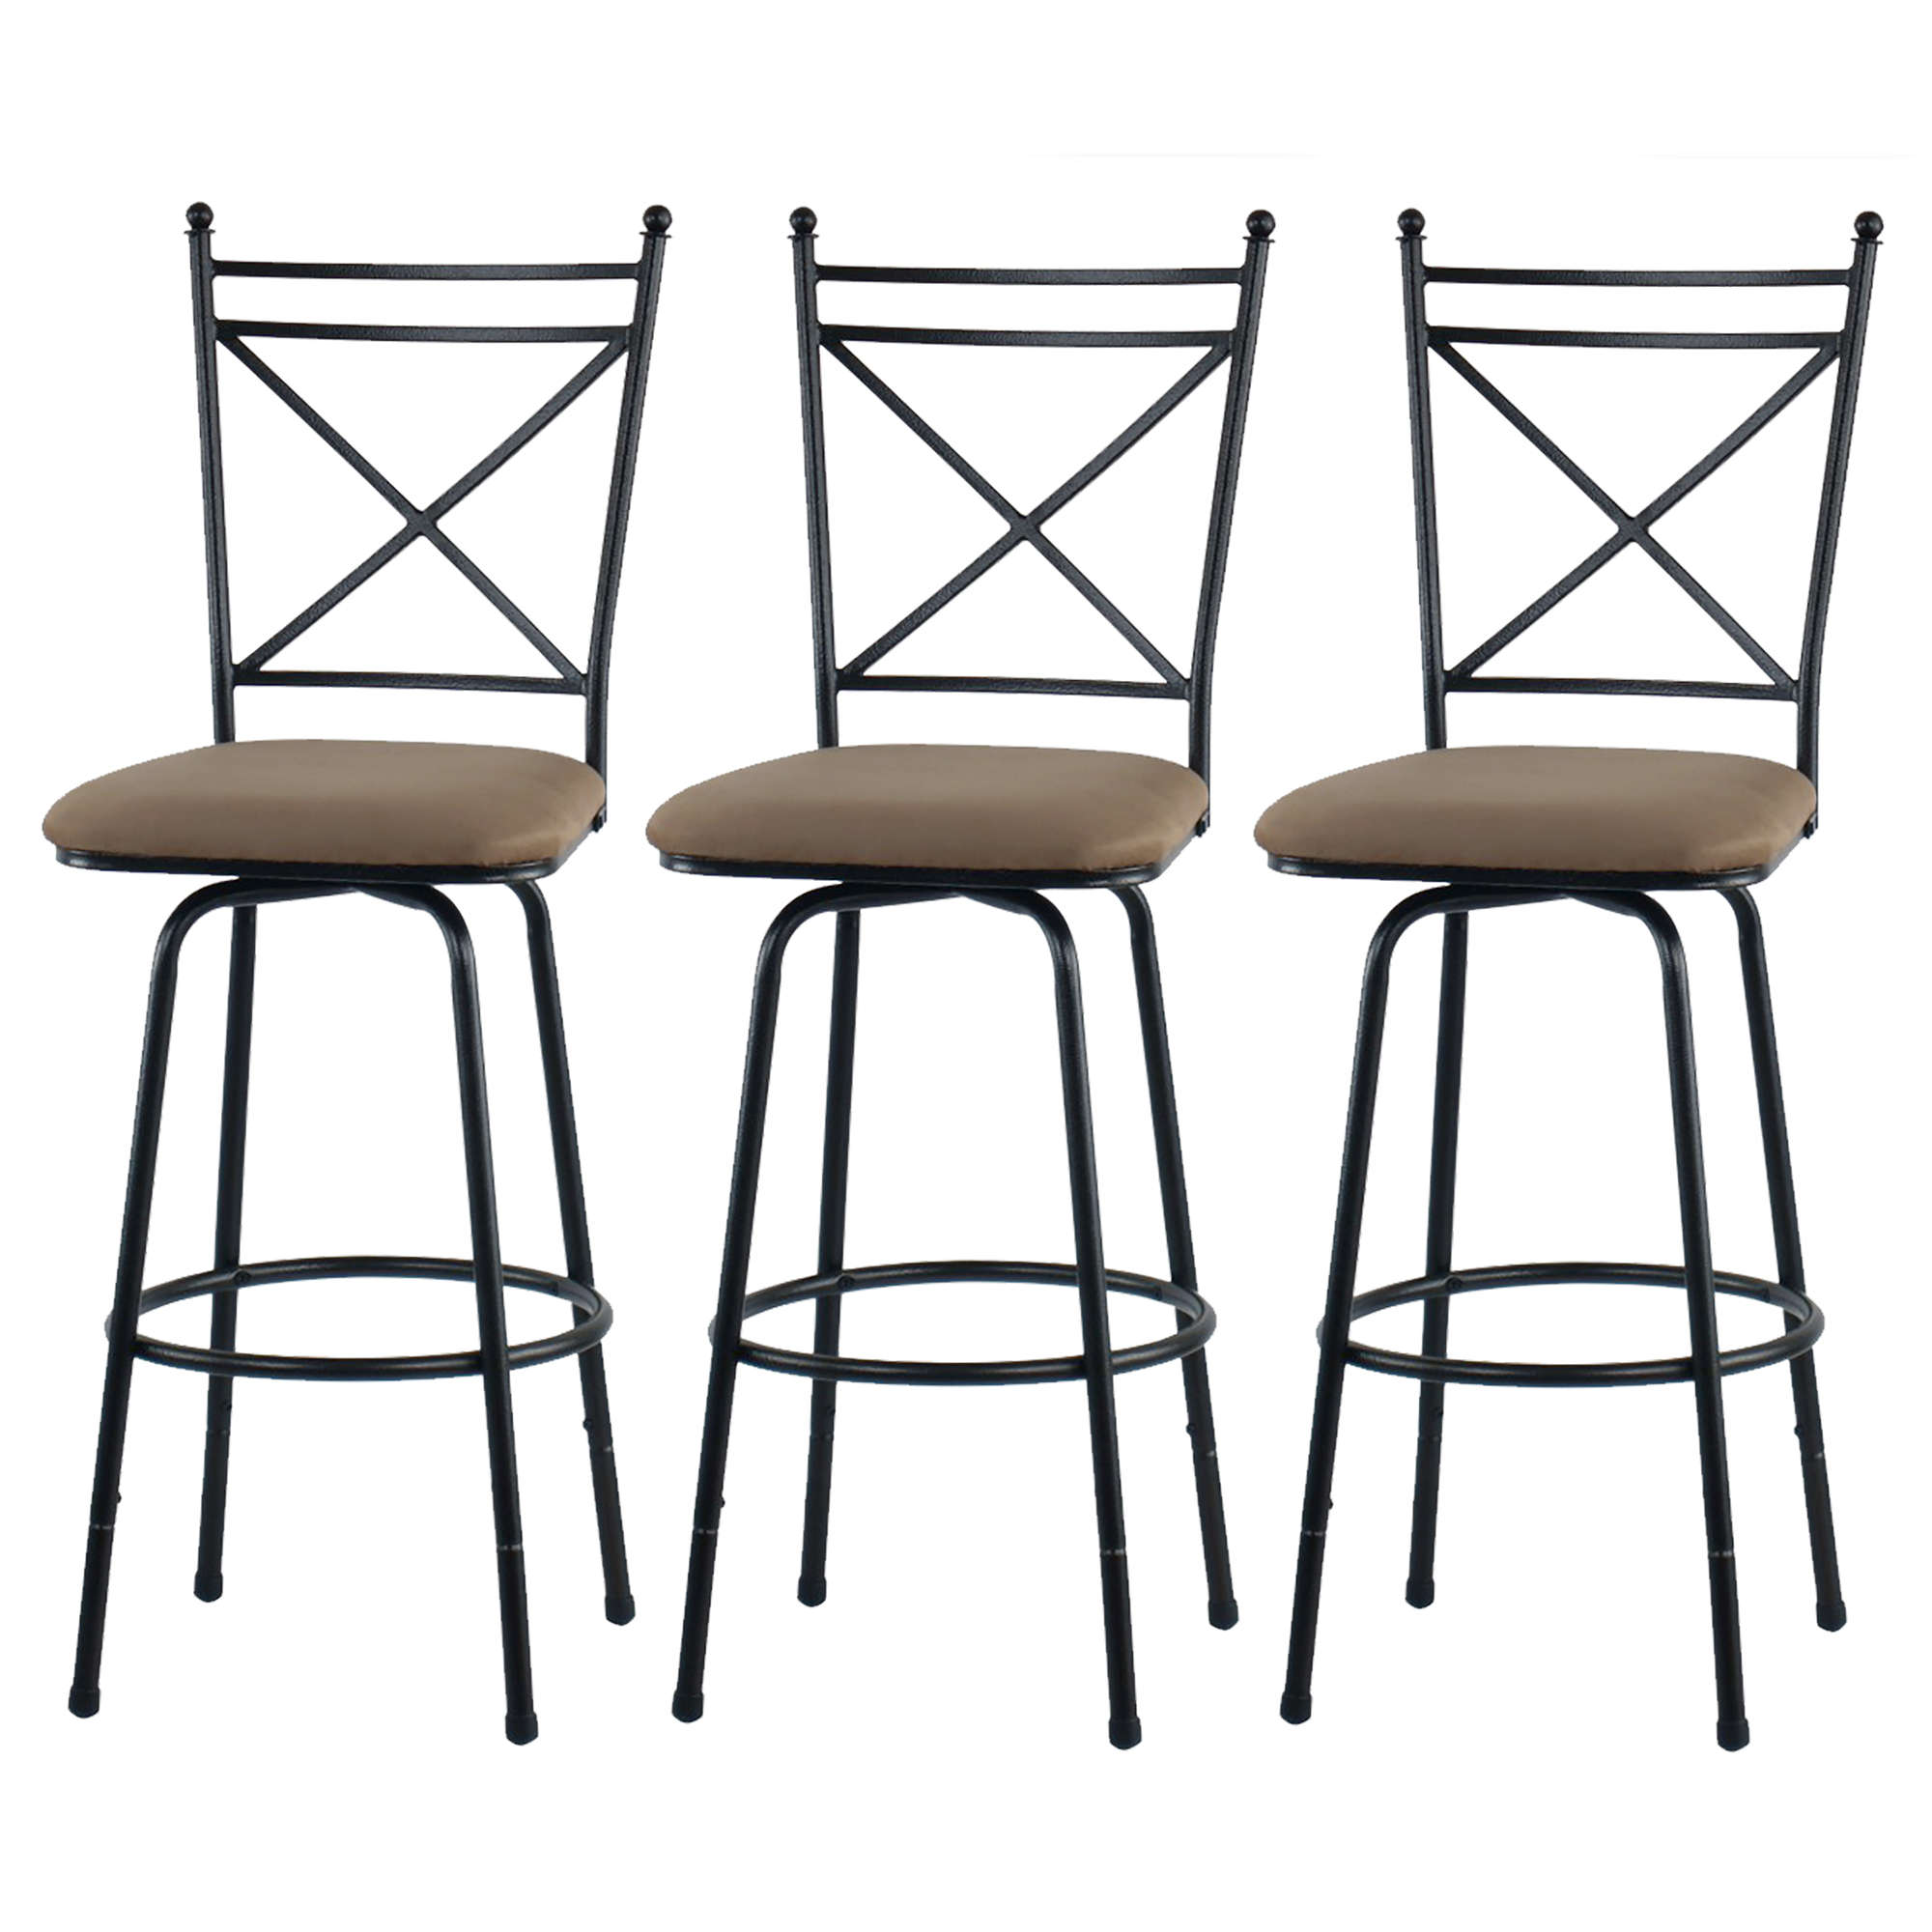 Mainstays Adjustable Metal Swivel Barstools, Antique Brass, Set of 3